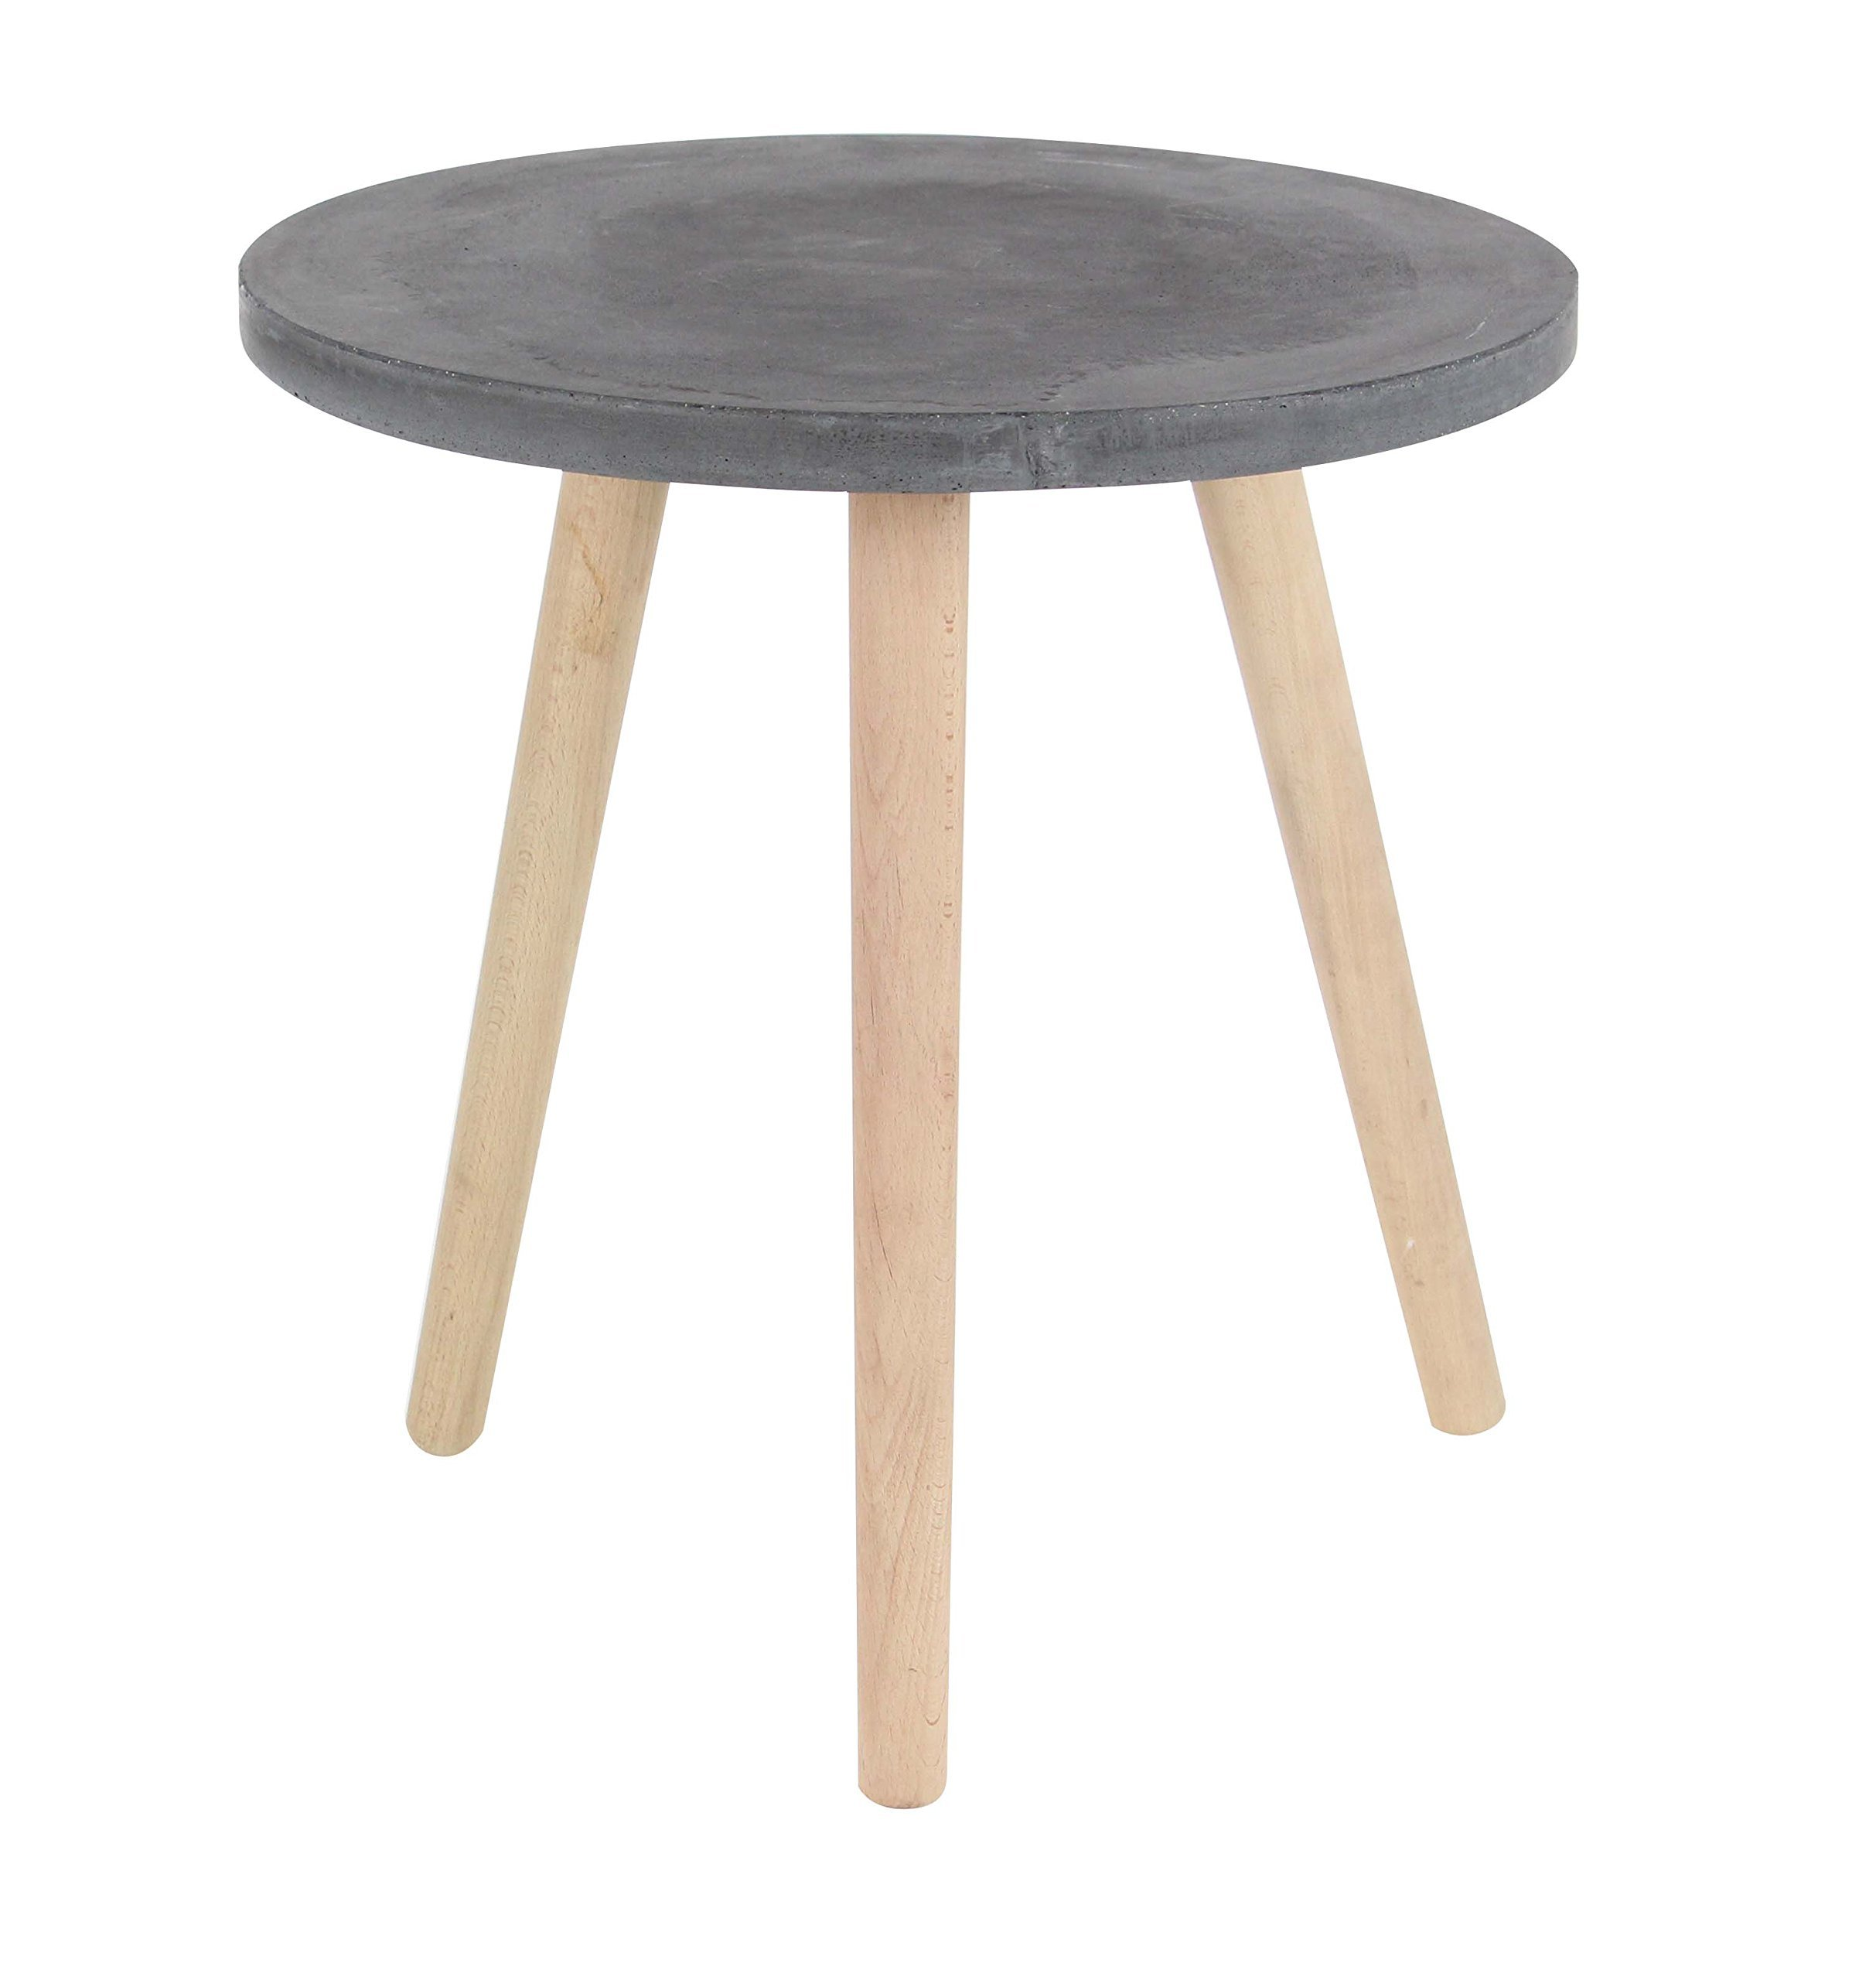 Deco 79 Wood and Fiber Clay Table, Black/Brown